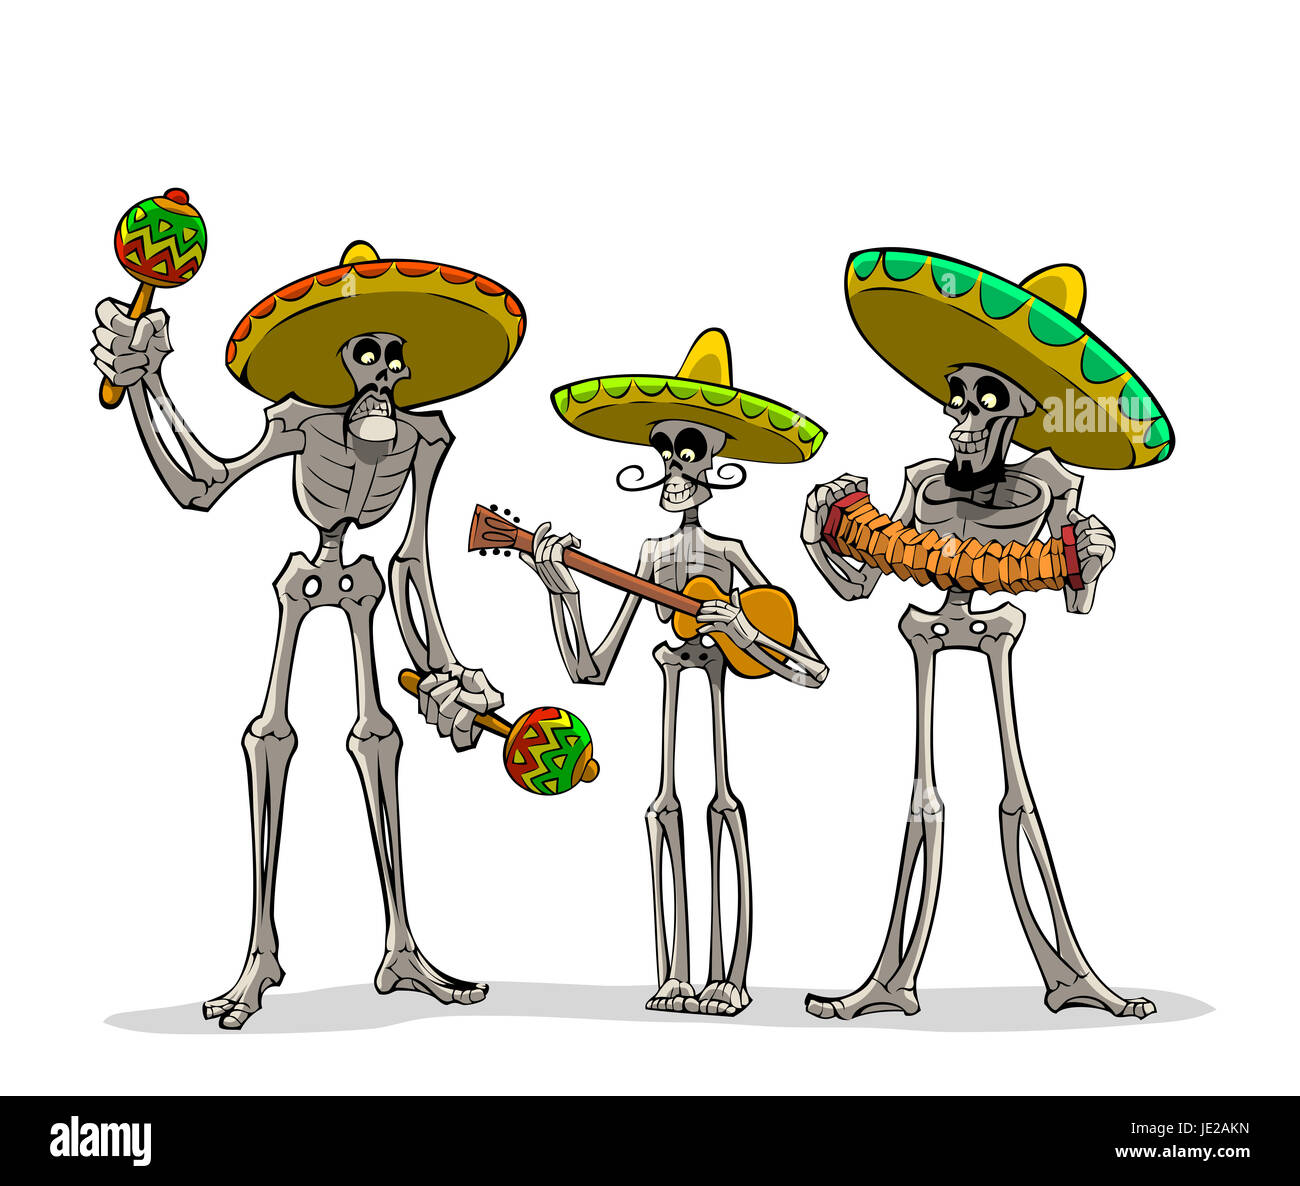 Danse Macabre. Three mexican skeletons with instruments play musics. - Stock Image